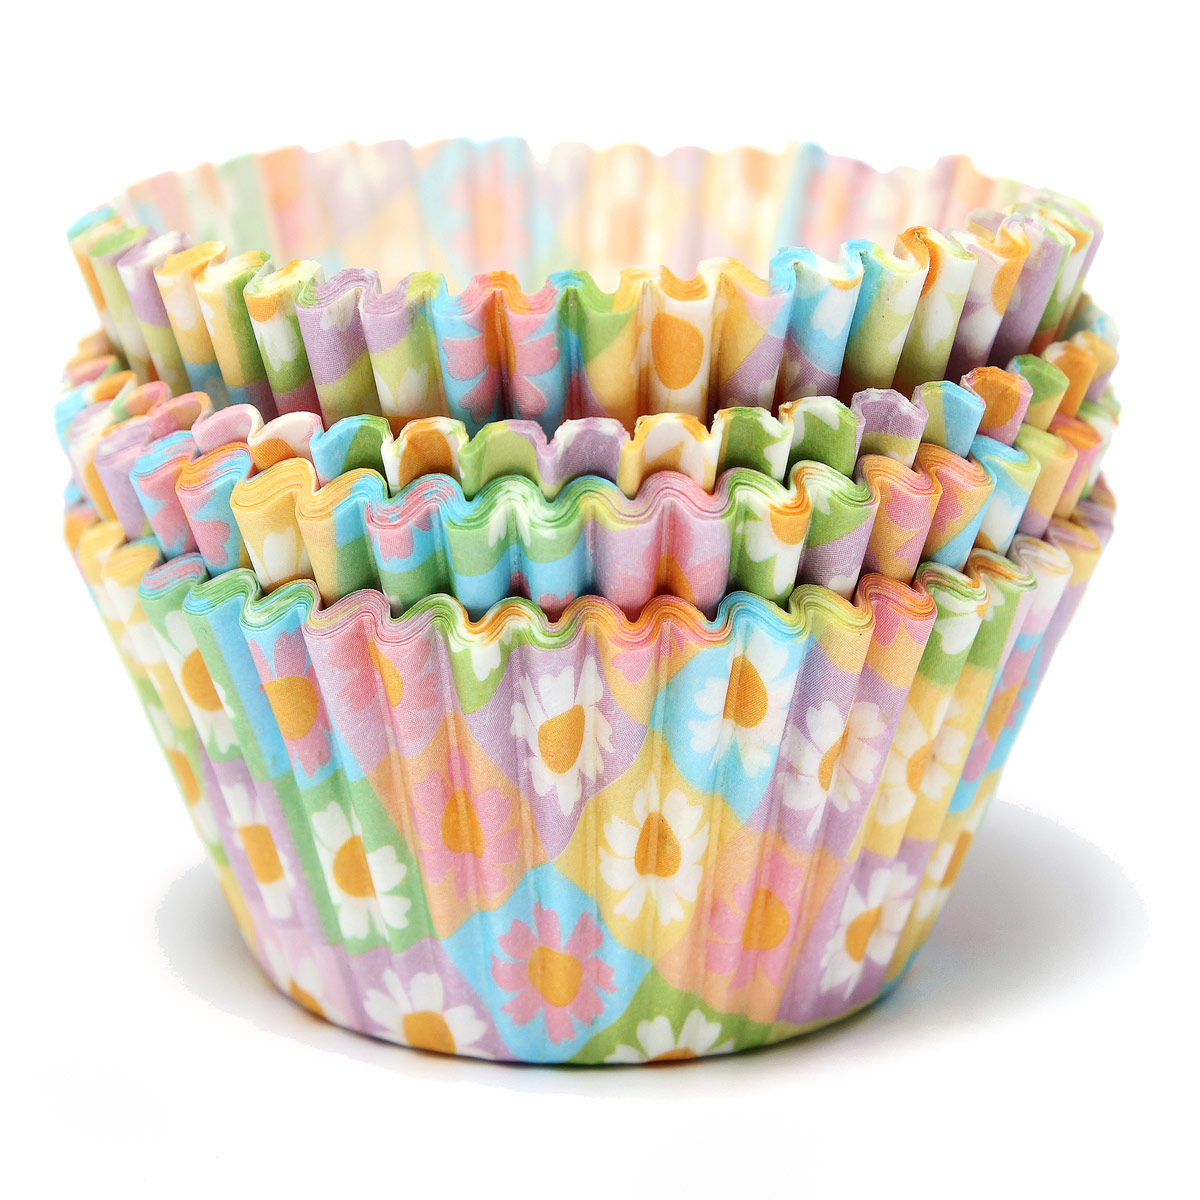 100X Cake Cupcake Paper Liner Case Chocolate Muffin Dessert Baking Cup Party